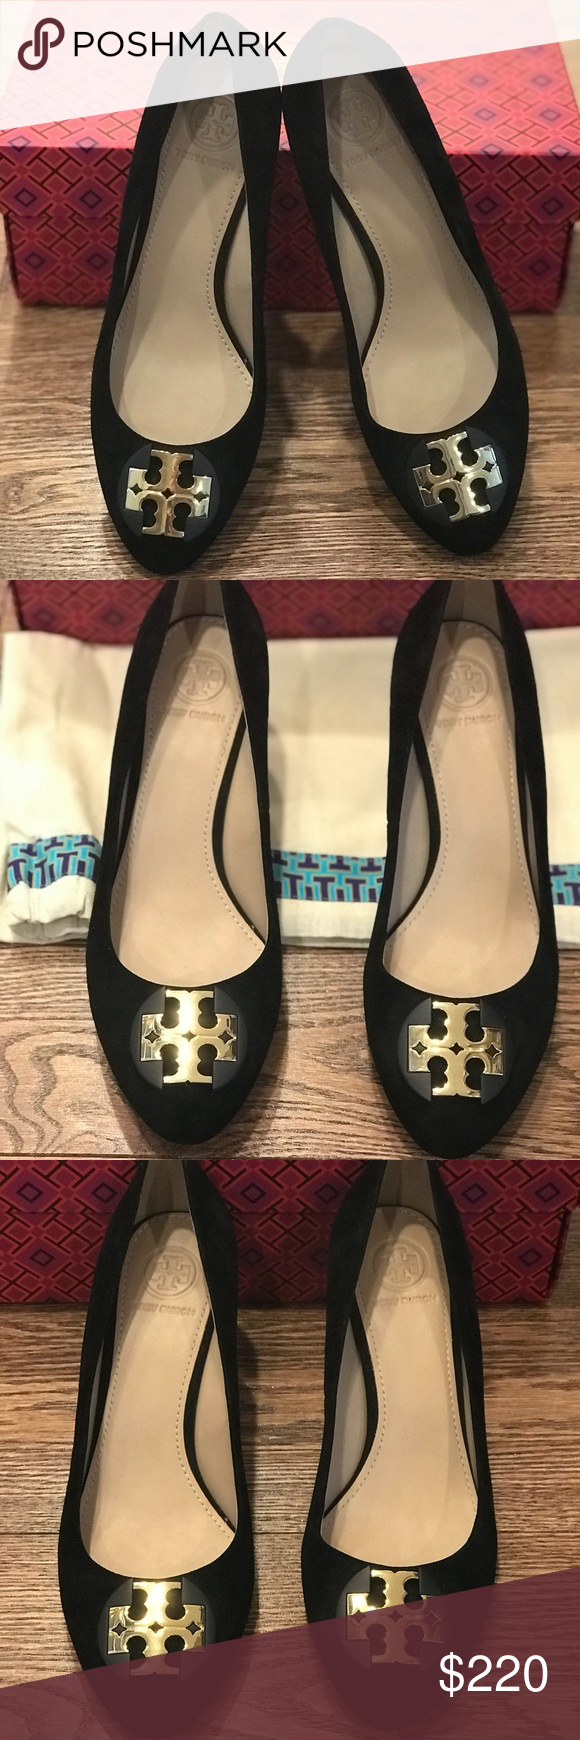 55334879fb1cc4 Tory Burch Luna Suede 65mm Wedge Pump- NIB These are a brand new in box